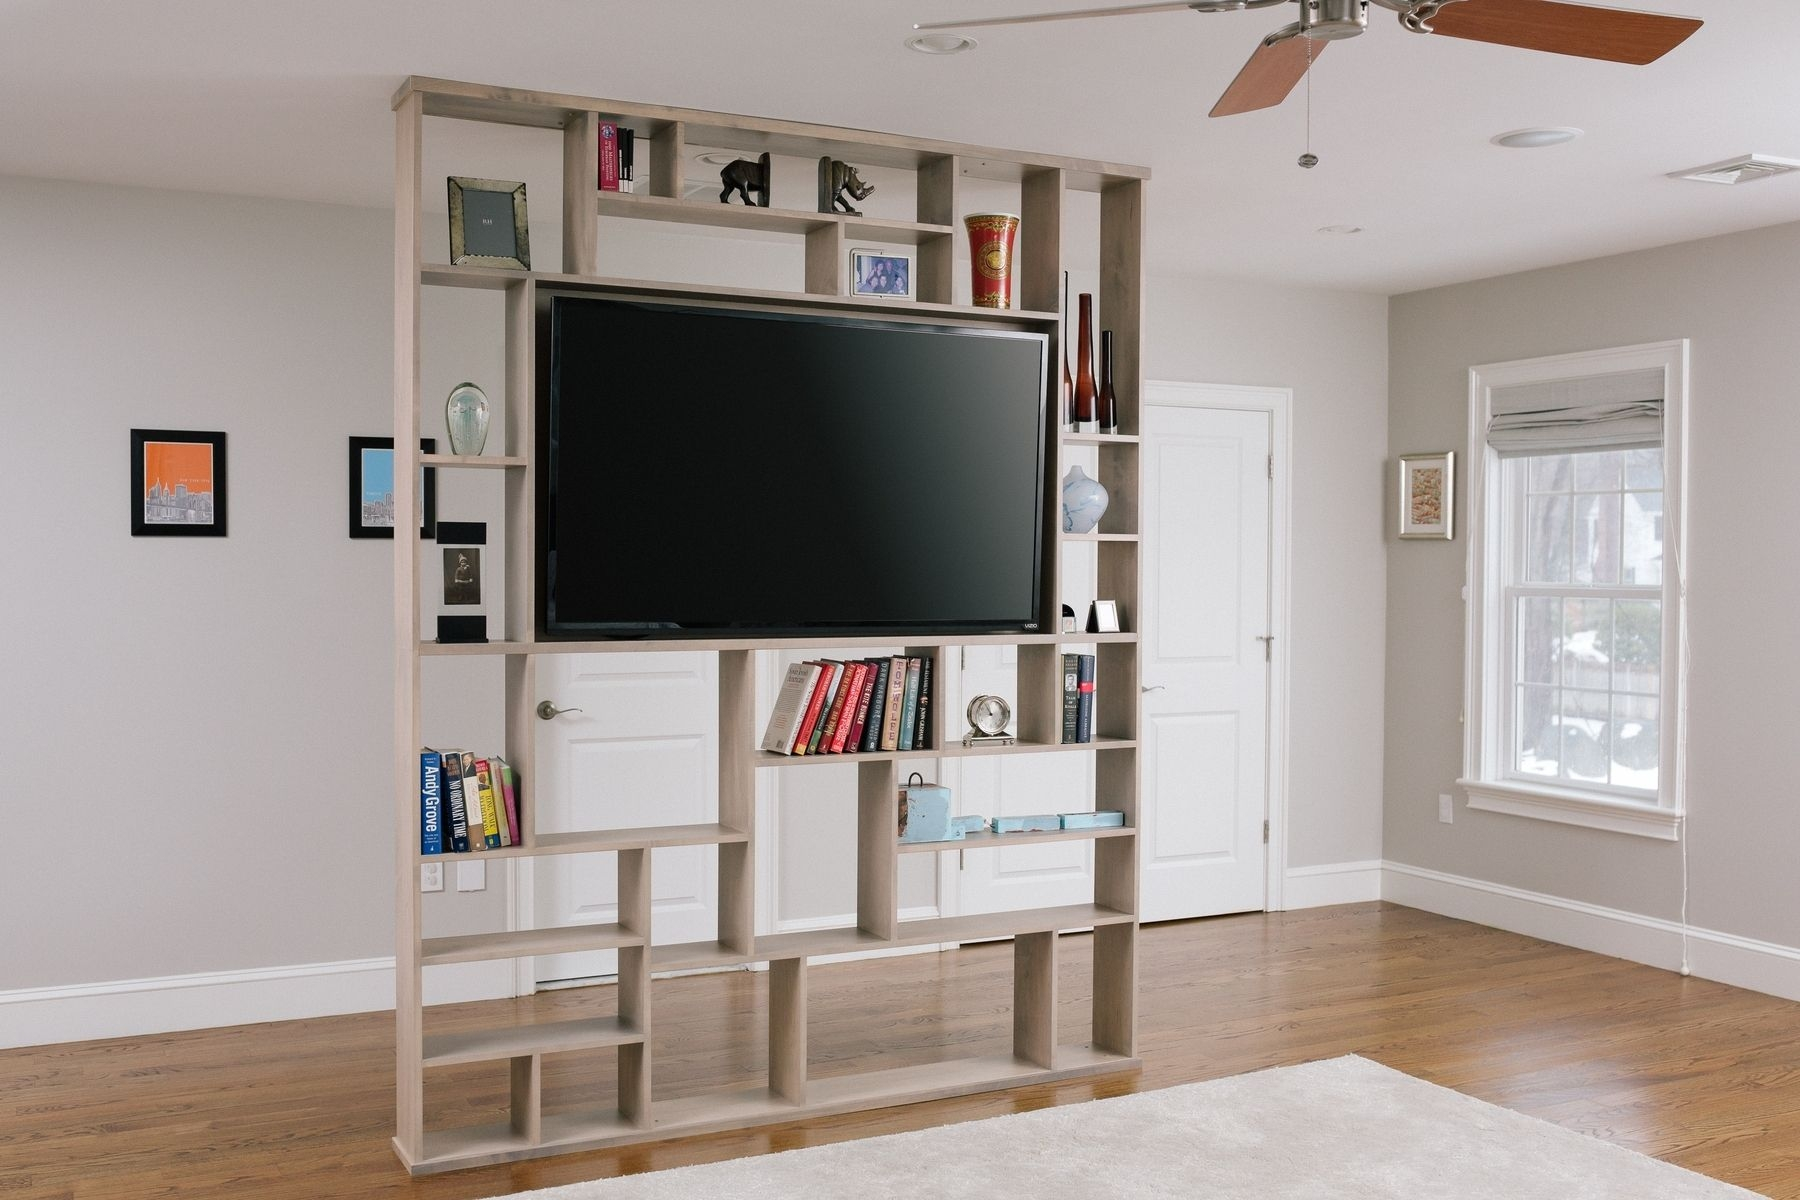 Hand Crafted Lexington Room Divider Bookshelf Tv Stand Corl With Regard To Bookshelf Tv (#8 of 15)